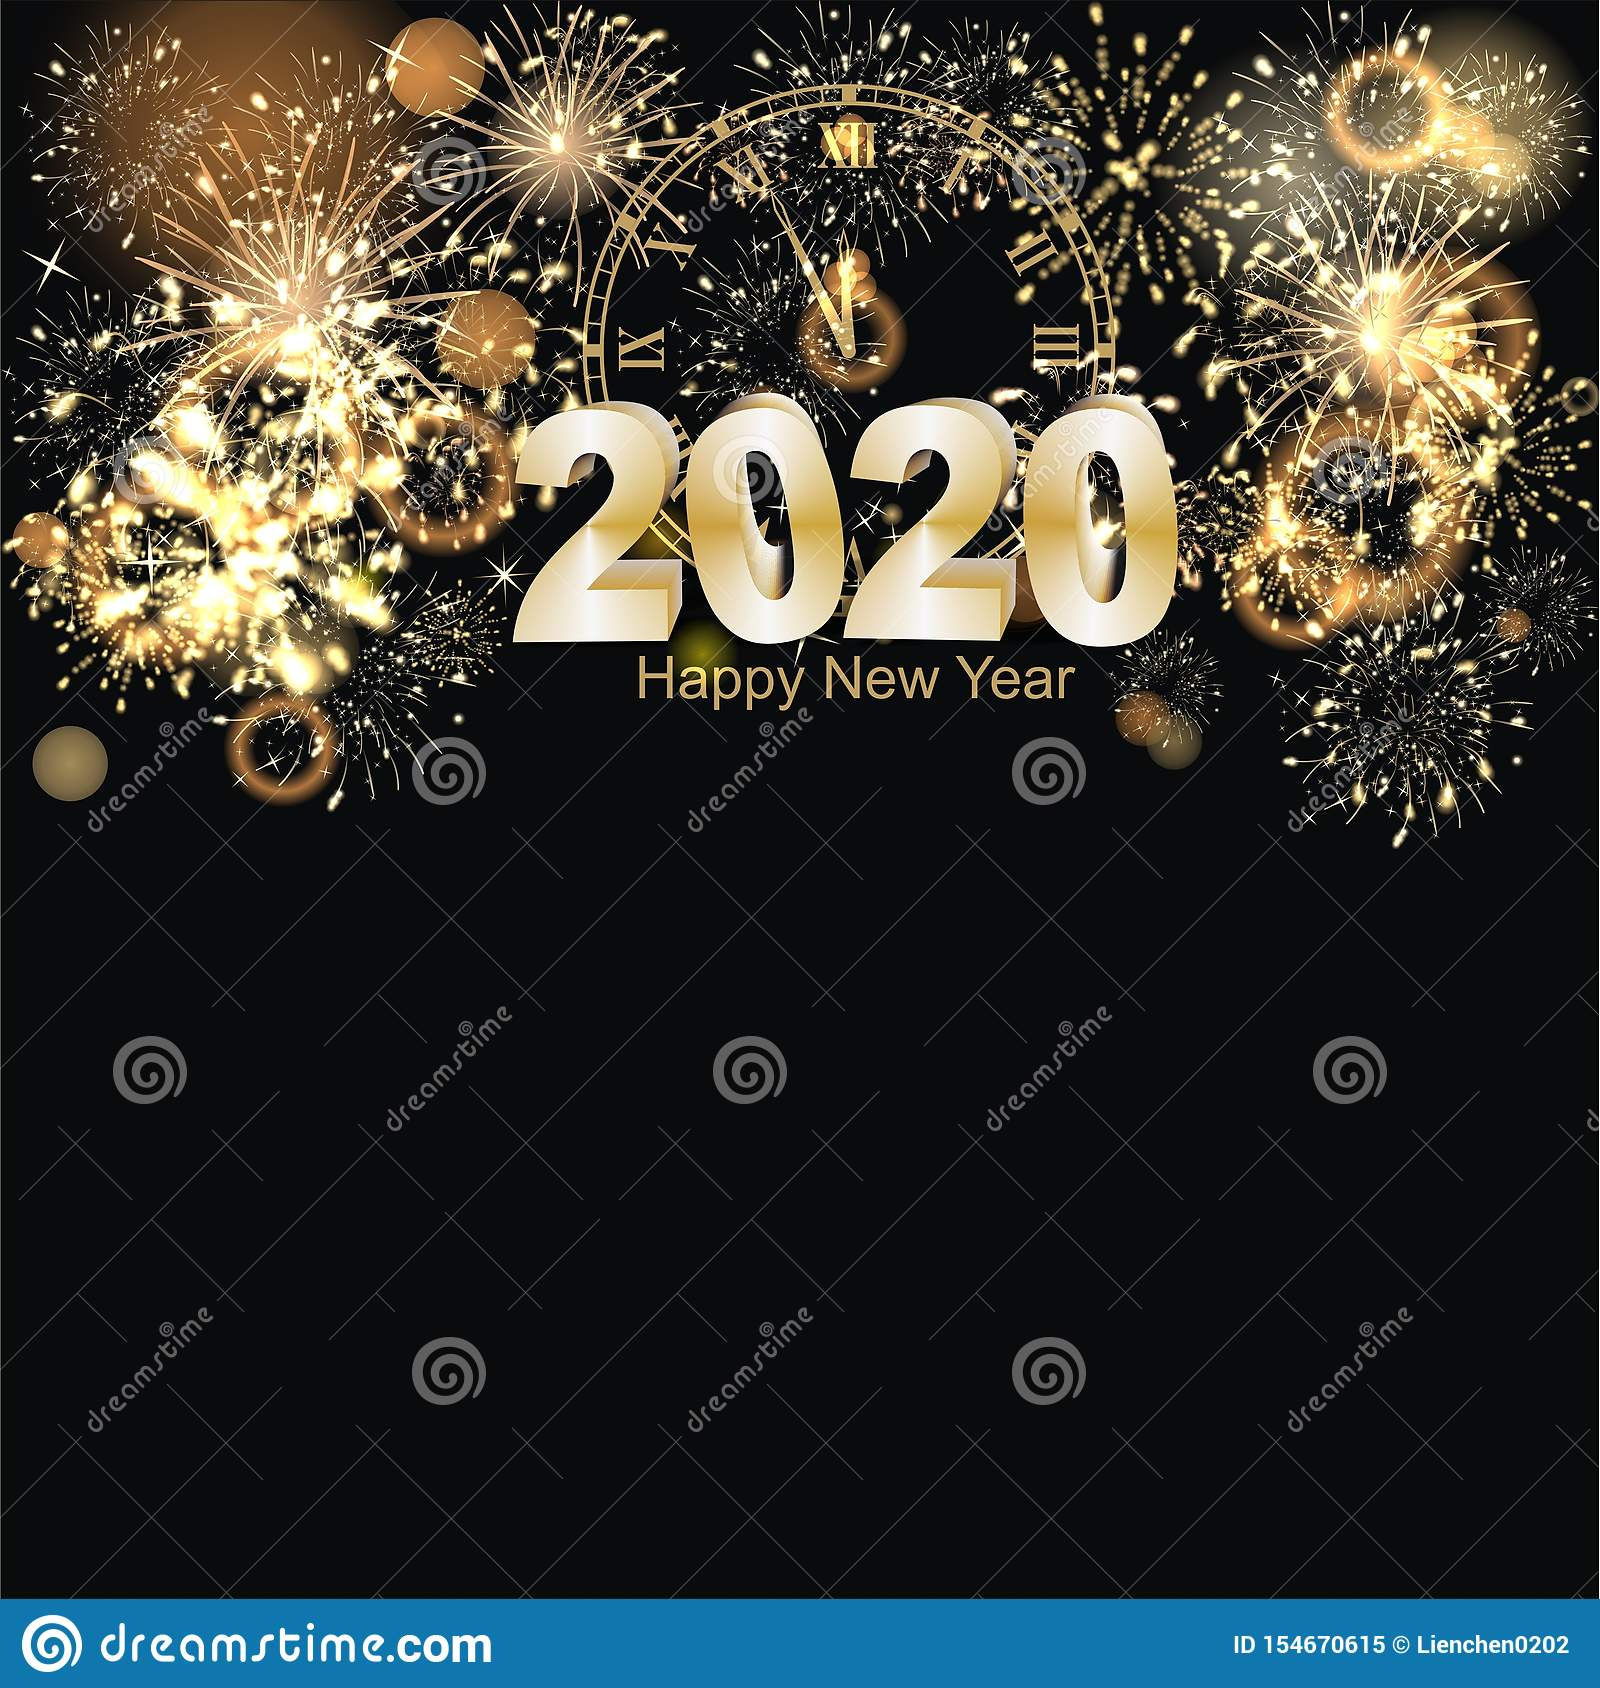 1600x1688 - Happy New Year Backgrounds 2